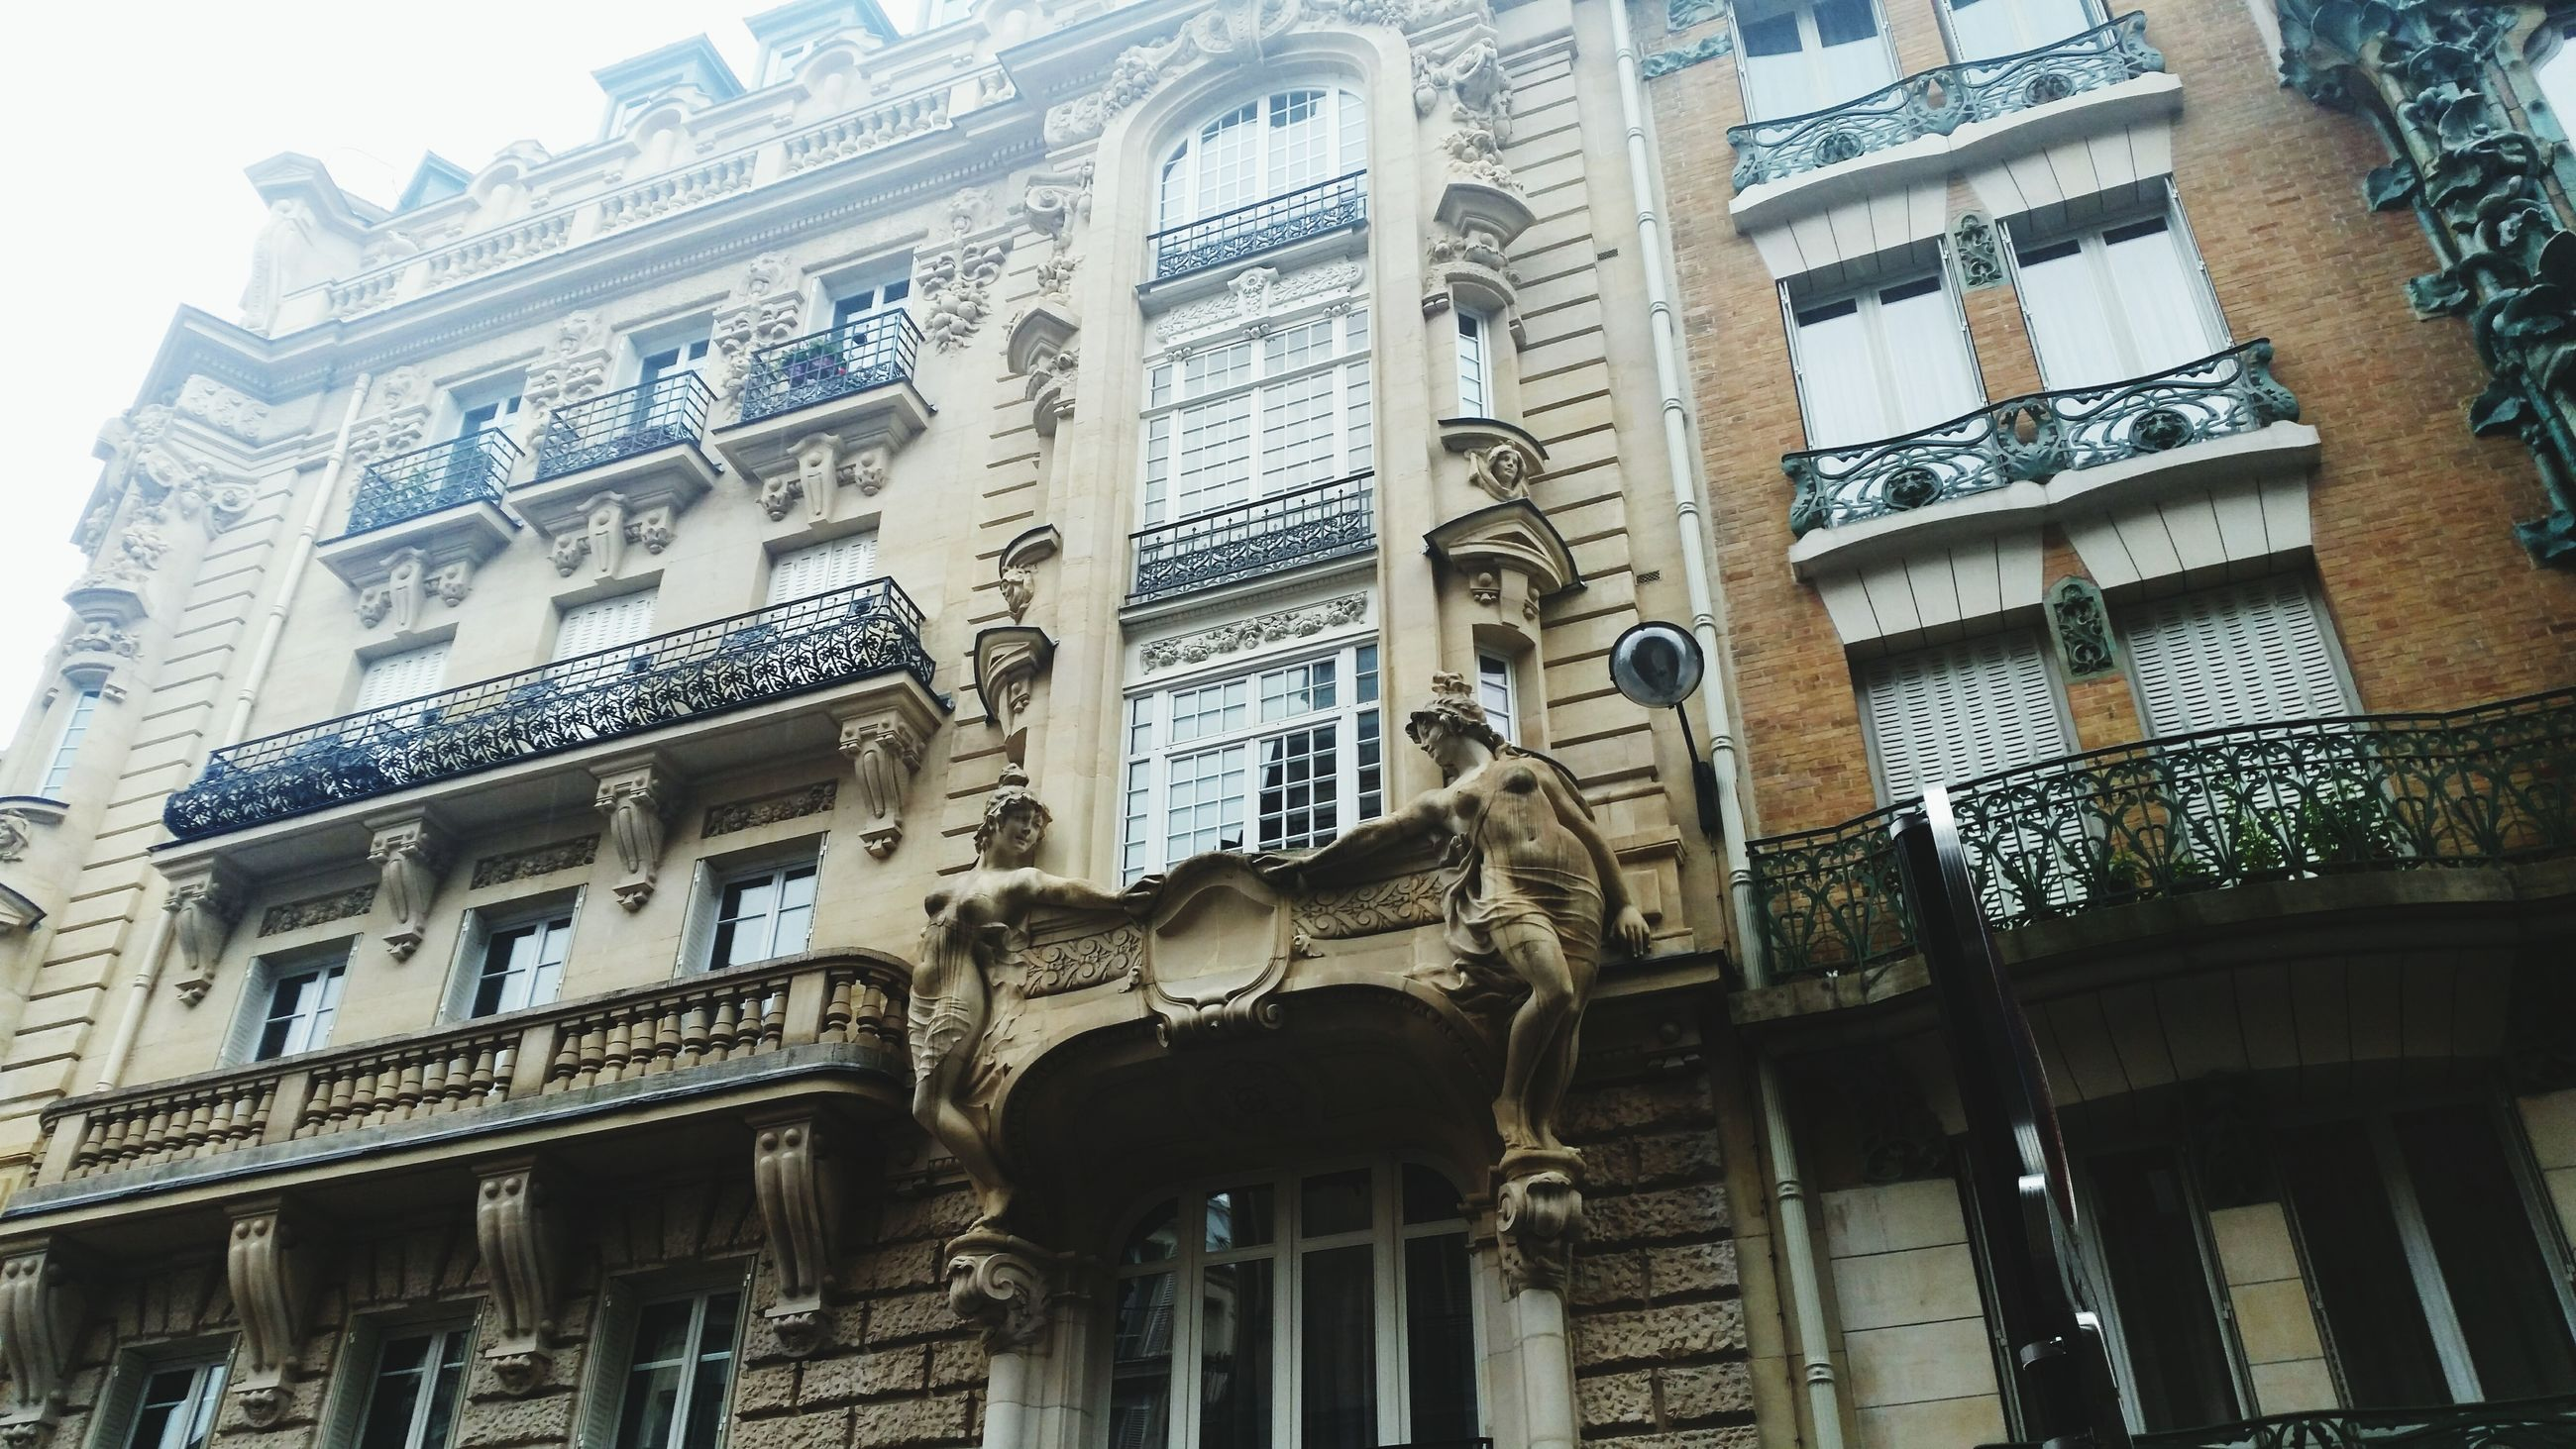 architecture, building exterior, built structure, low angle view, window, building, city, text, facade, residential building, sky, day, outdoors, art and craft, no people, residential structure, human representation, balcony, western script, arch